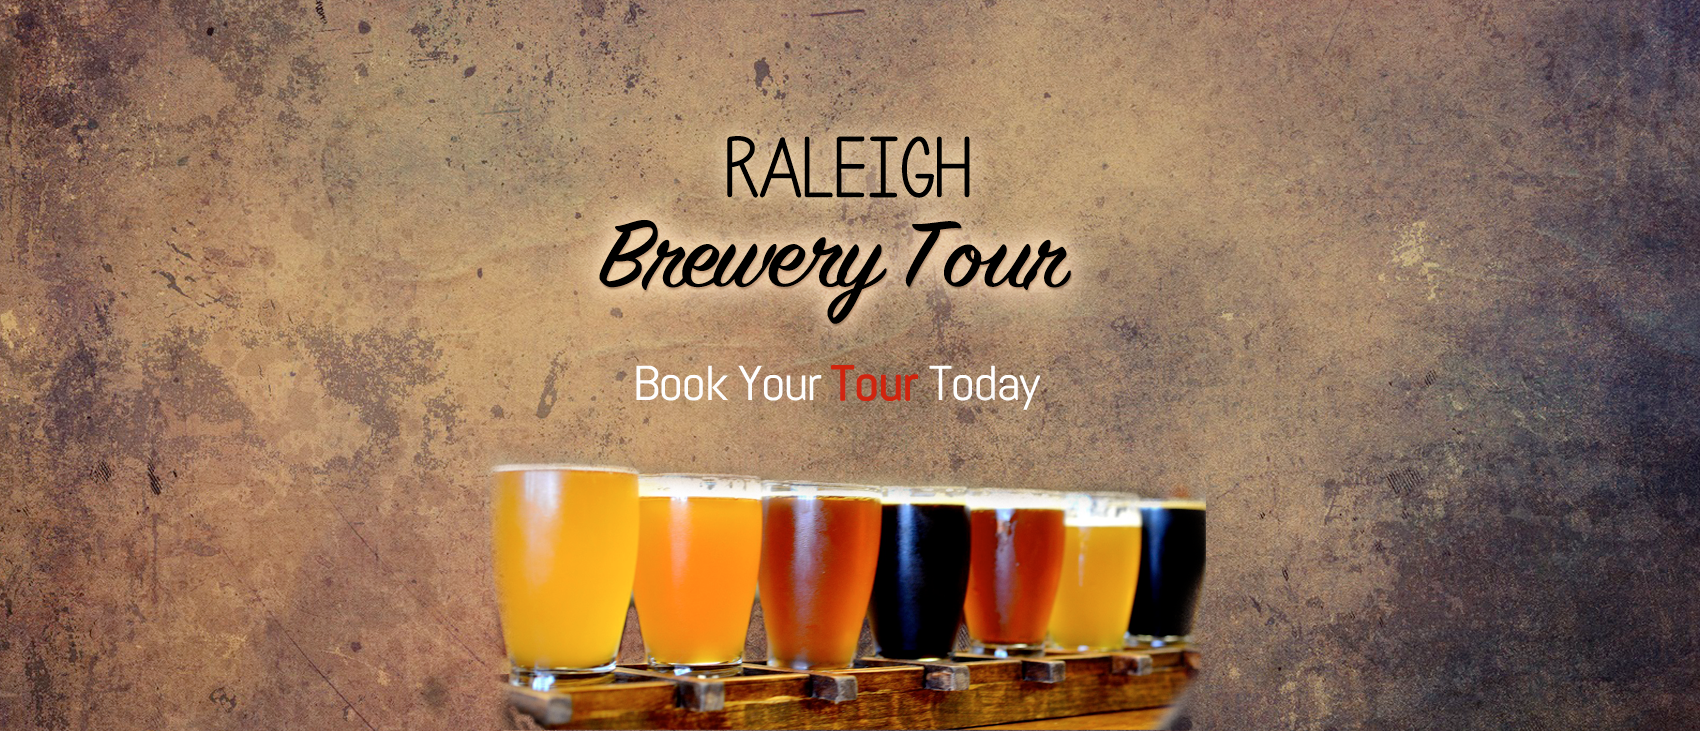 Raleigh Brewery Tour | Raleigh Dream Limos